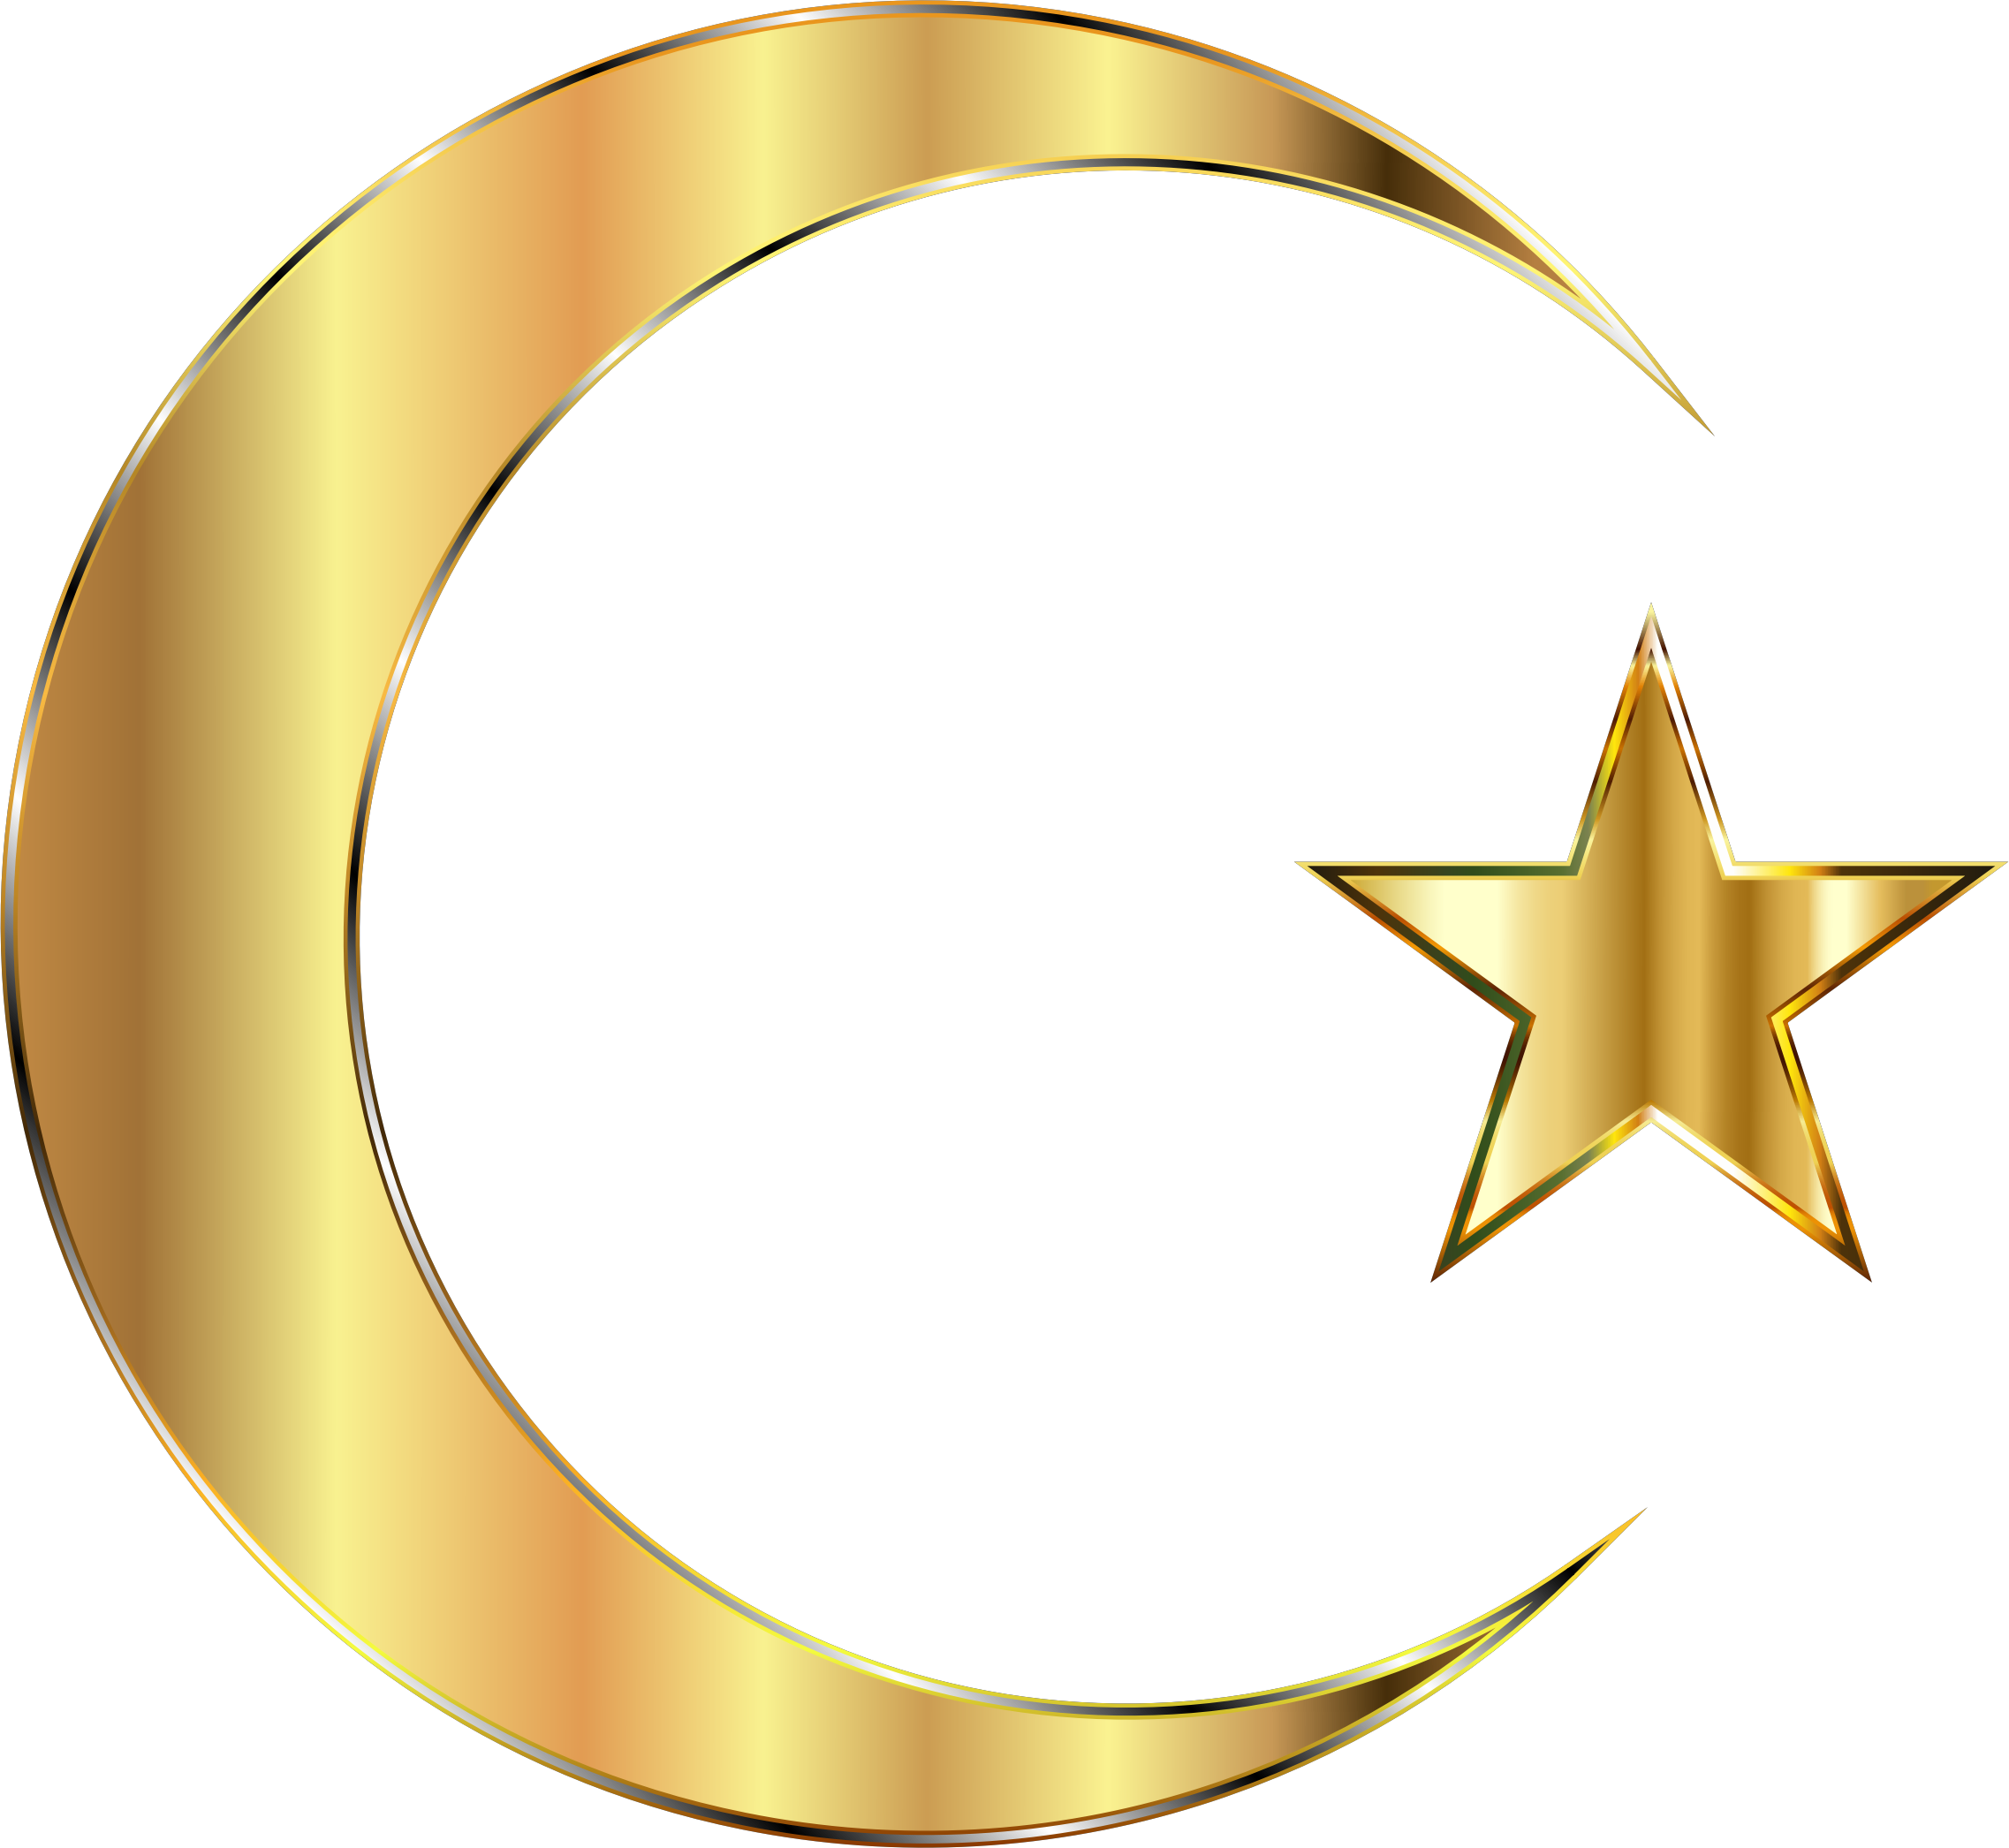 Crescent vector moon. Clipart golden and star